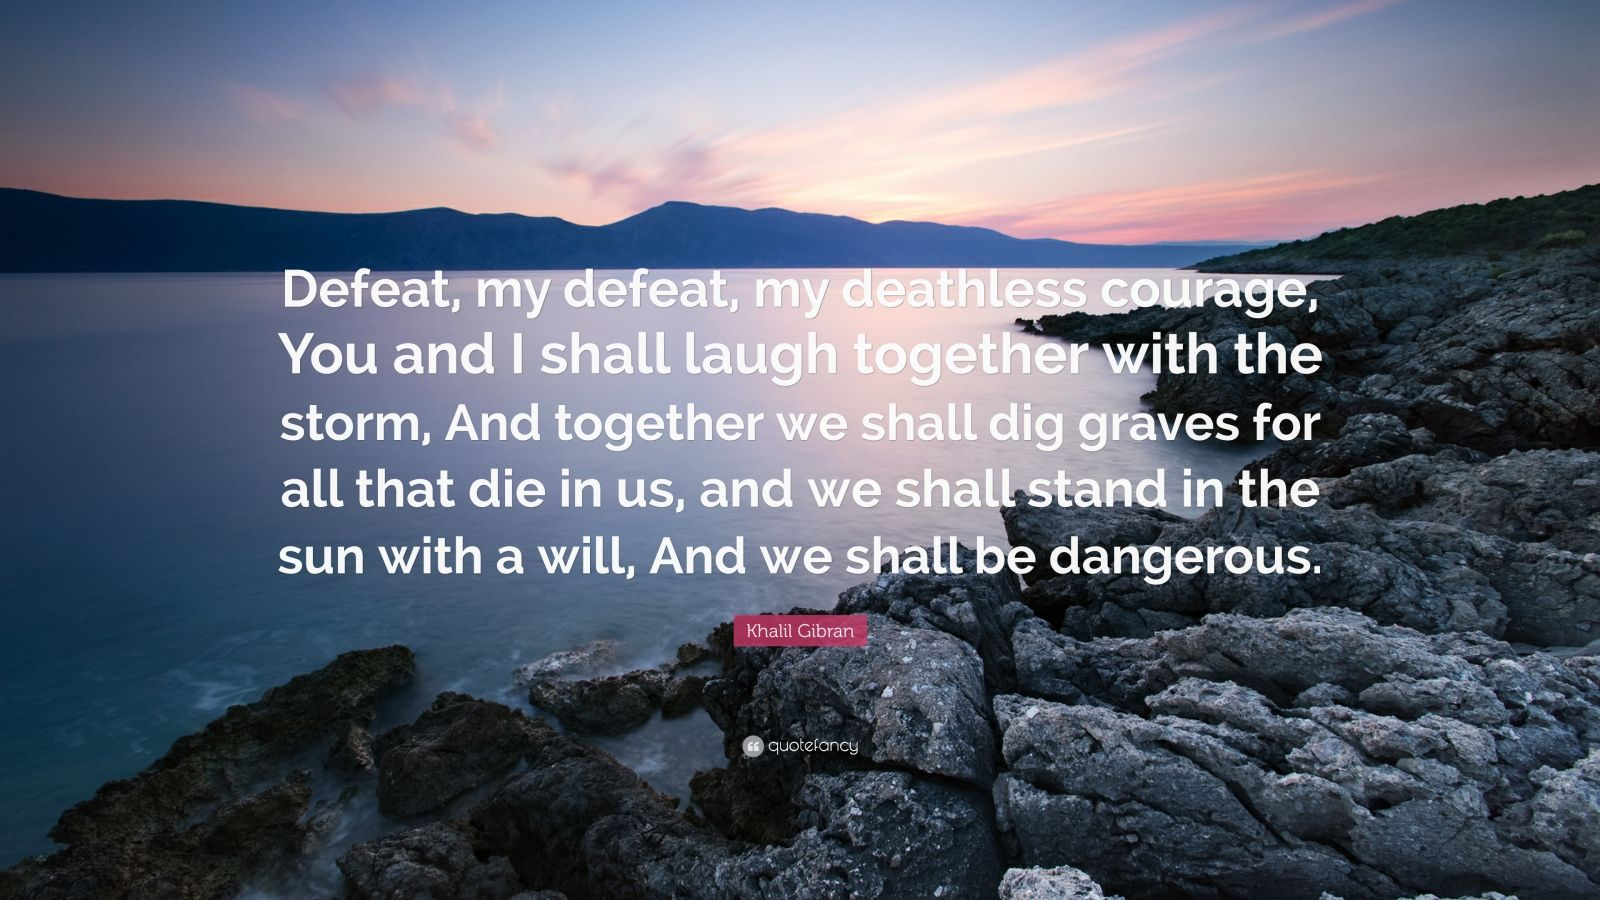 """Khalil Gibran Quote: """"Defeat, my defeat, my deathless courage, You and I shall laugh together with the storm, And together we shall dig graves for all that die in us, and we shall stand in the sun with a will, And we shall be dangerous."""""""